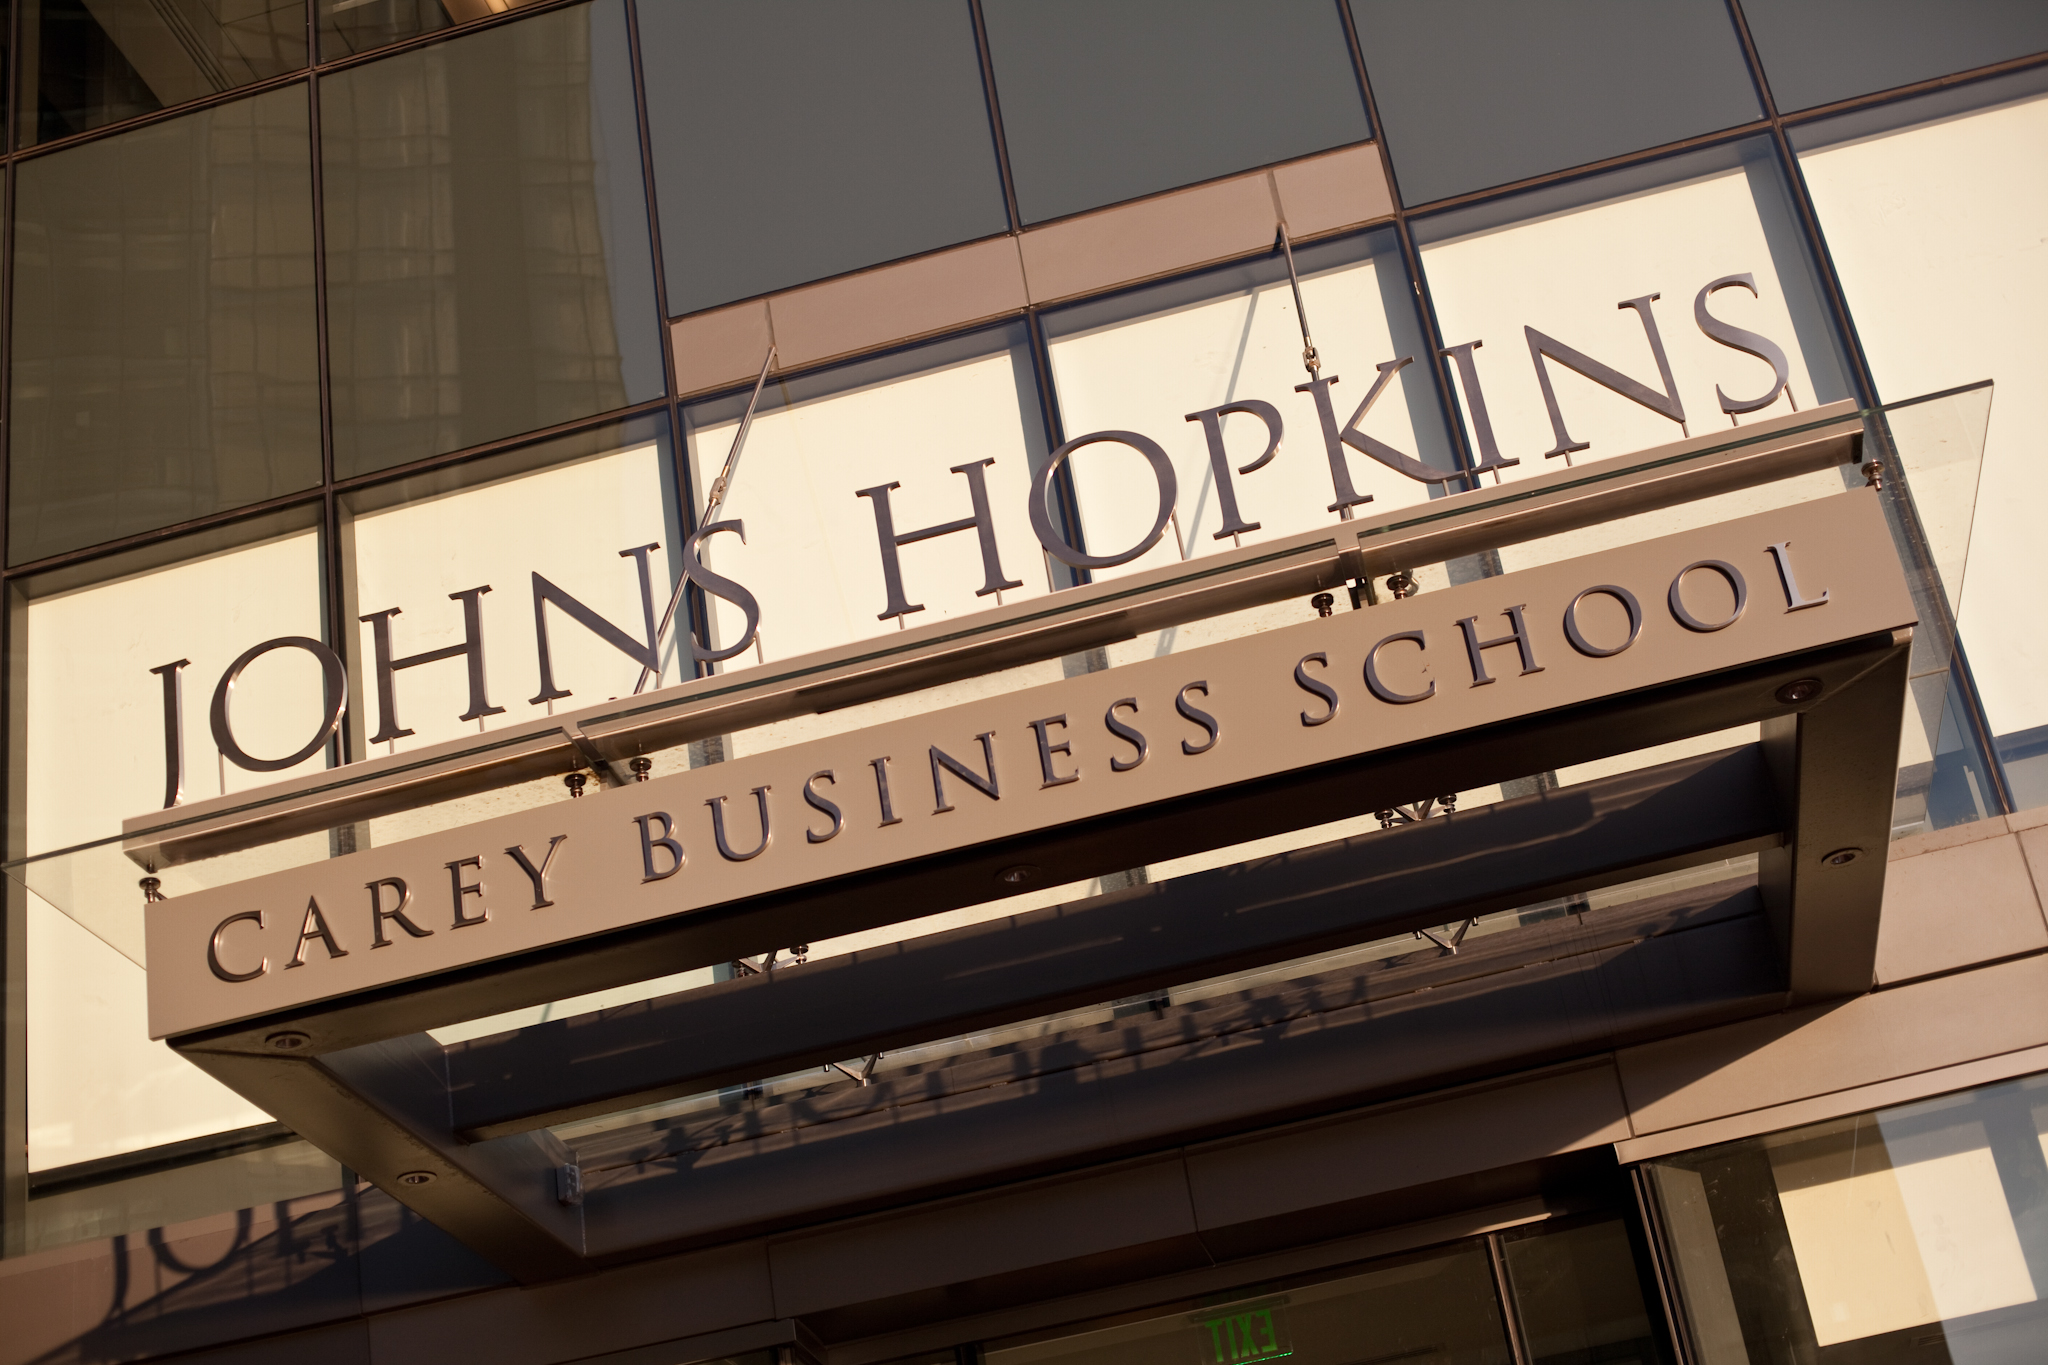 The Johns Hopkins Carey Business School has added 12 full-time faculty members for the start of the 2018-19 academic year, bring